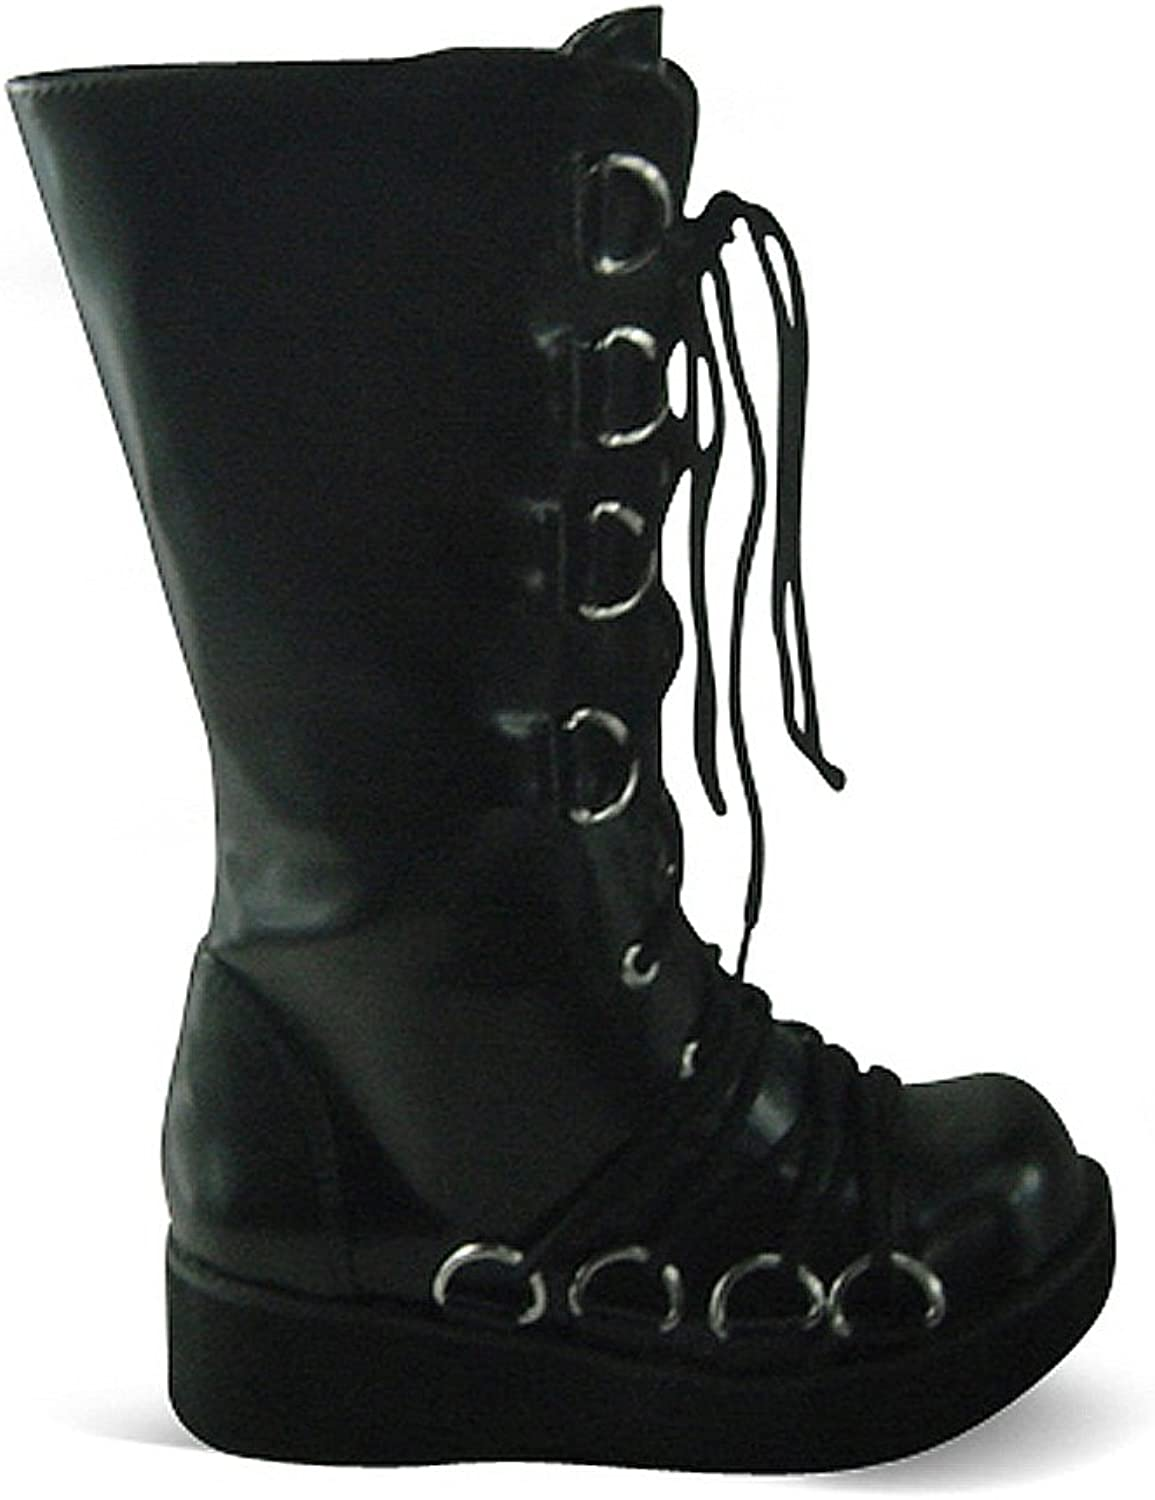 Antaina Low Heel Black PU Metal Buckle Punk Chunky Lolita Platform Boots